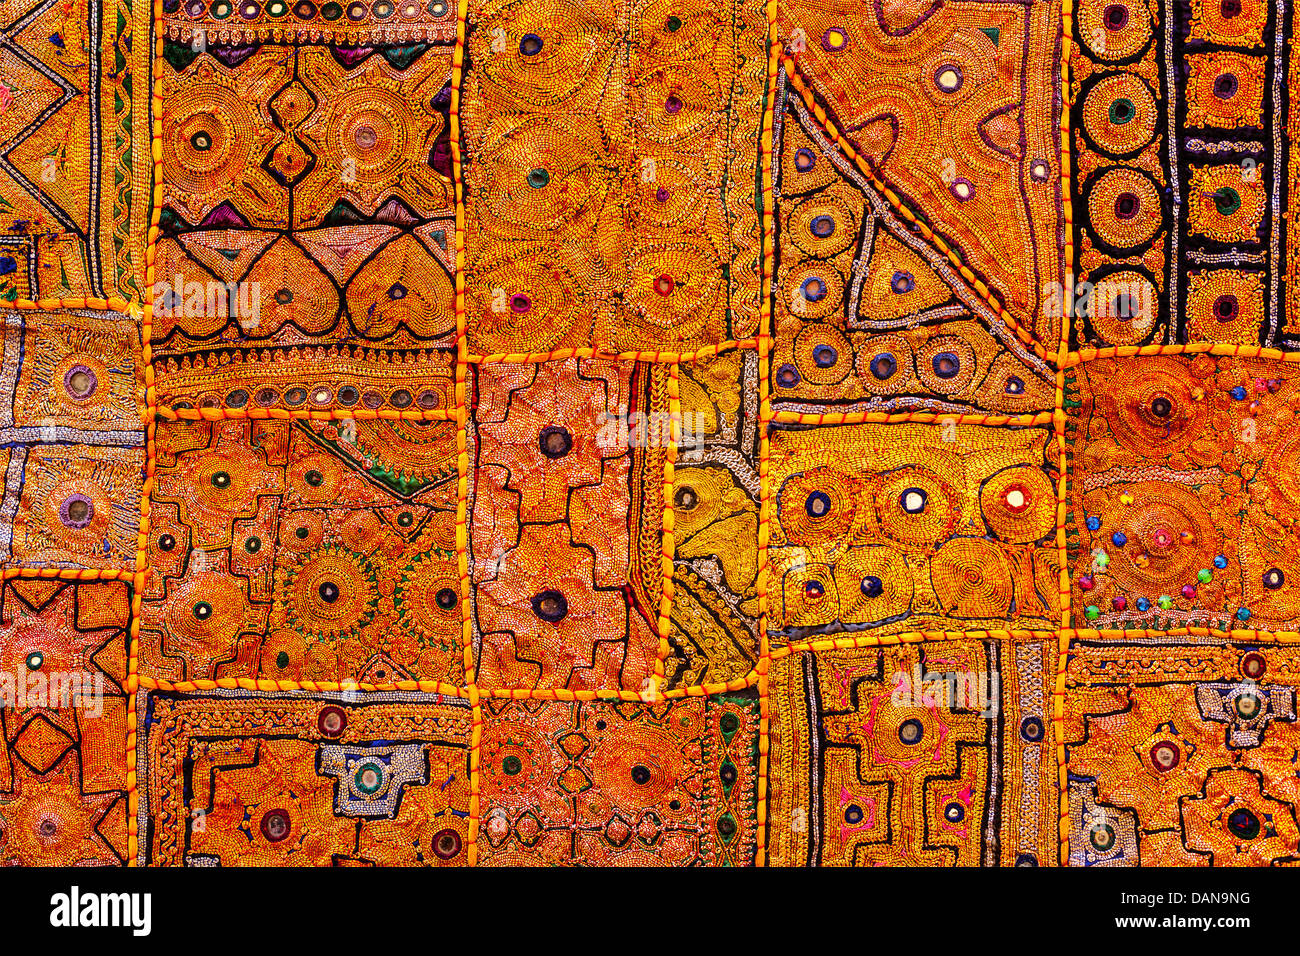 Textiles de tissus indiens colorés texture background tapis patchwork quilt. L'Inde Photo Stock